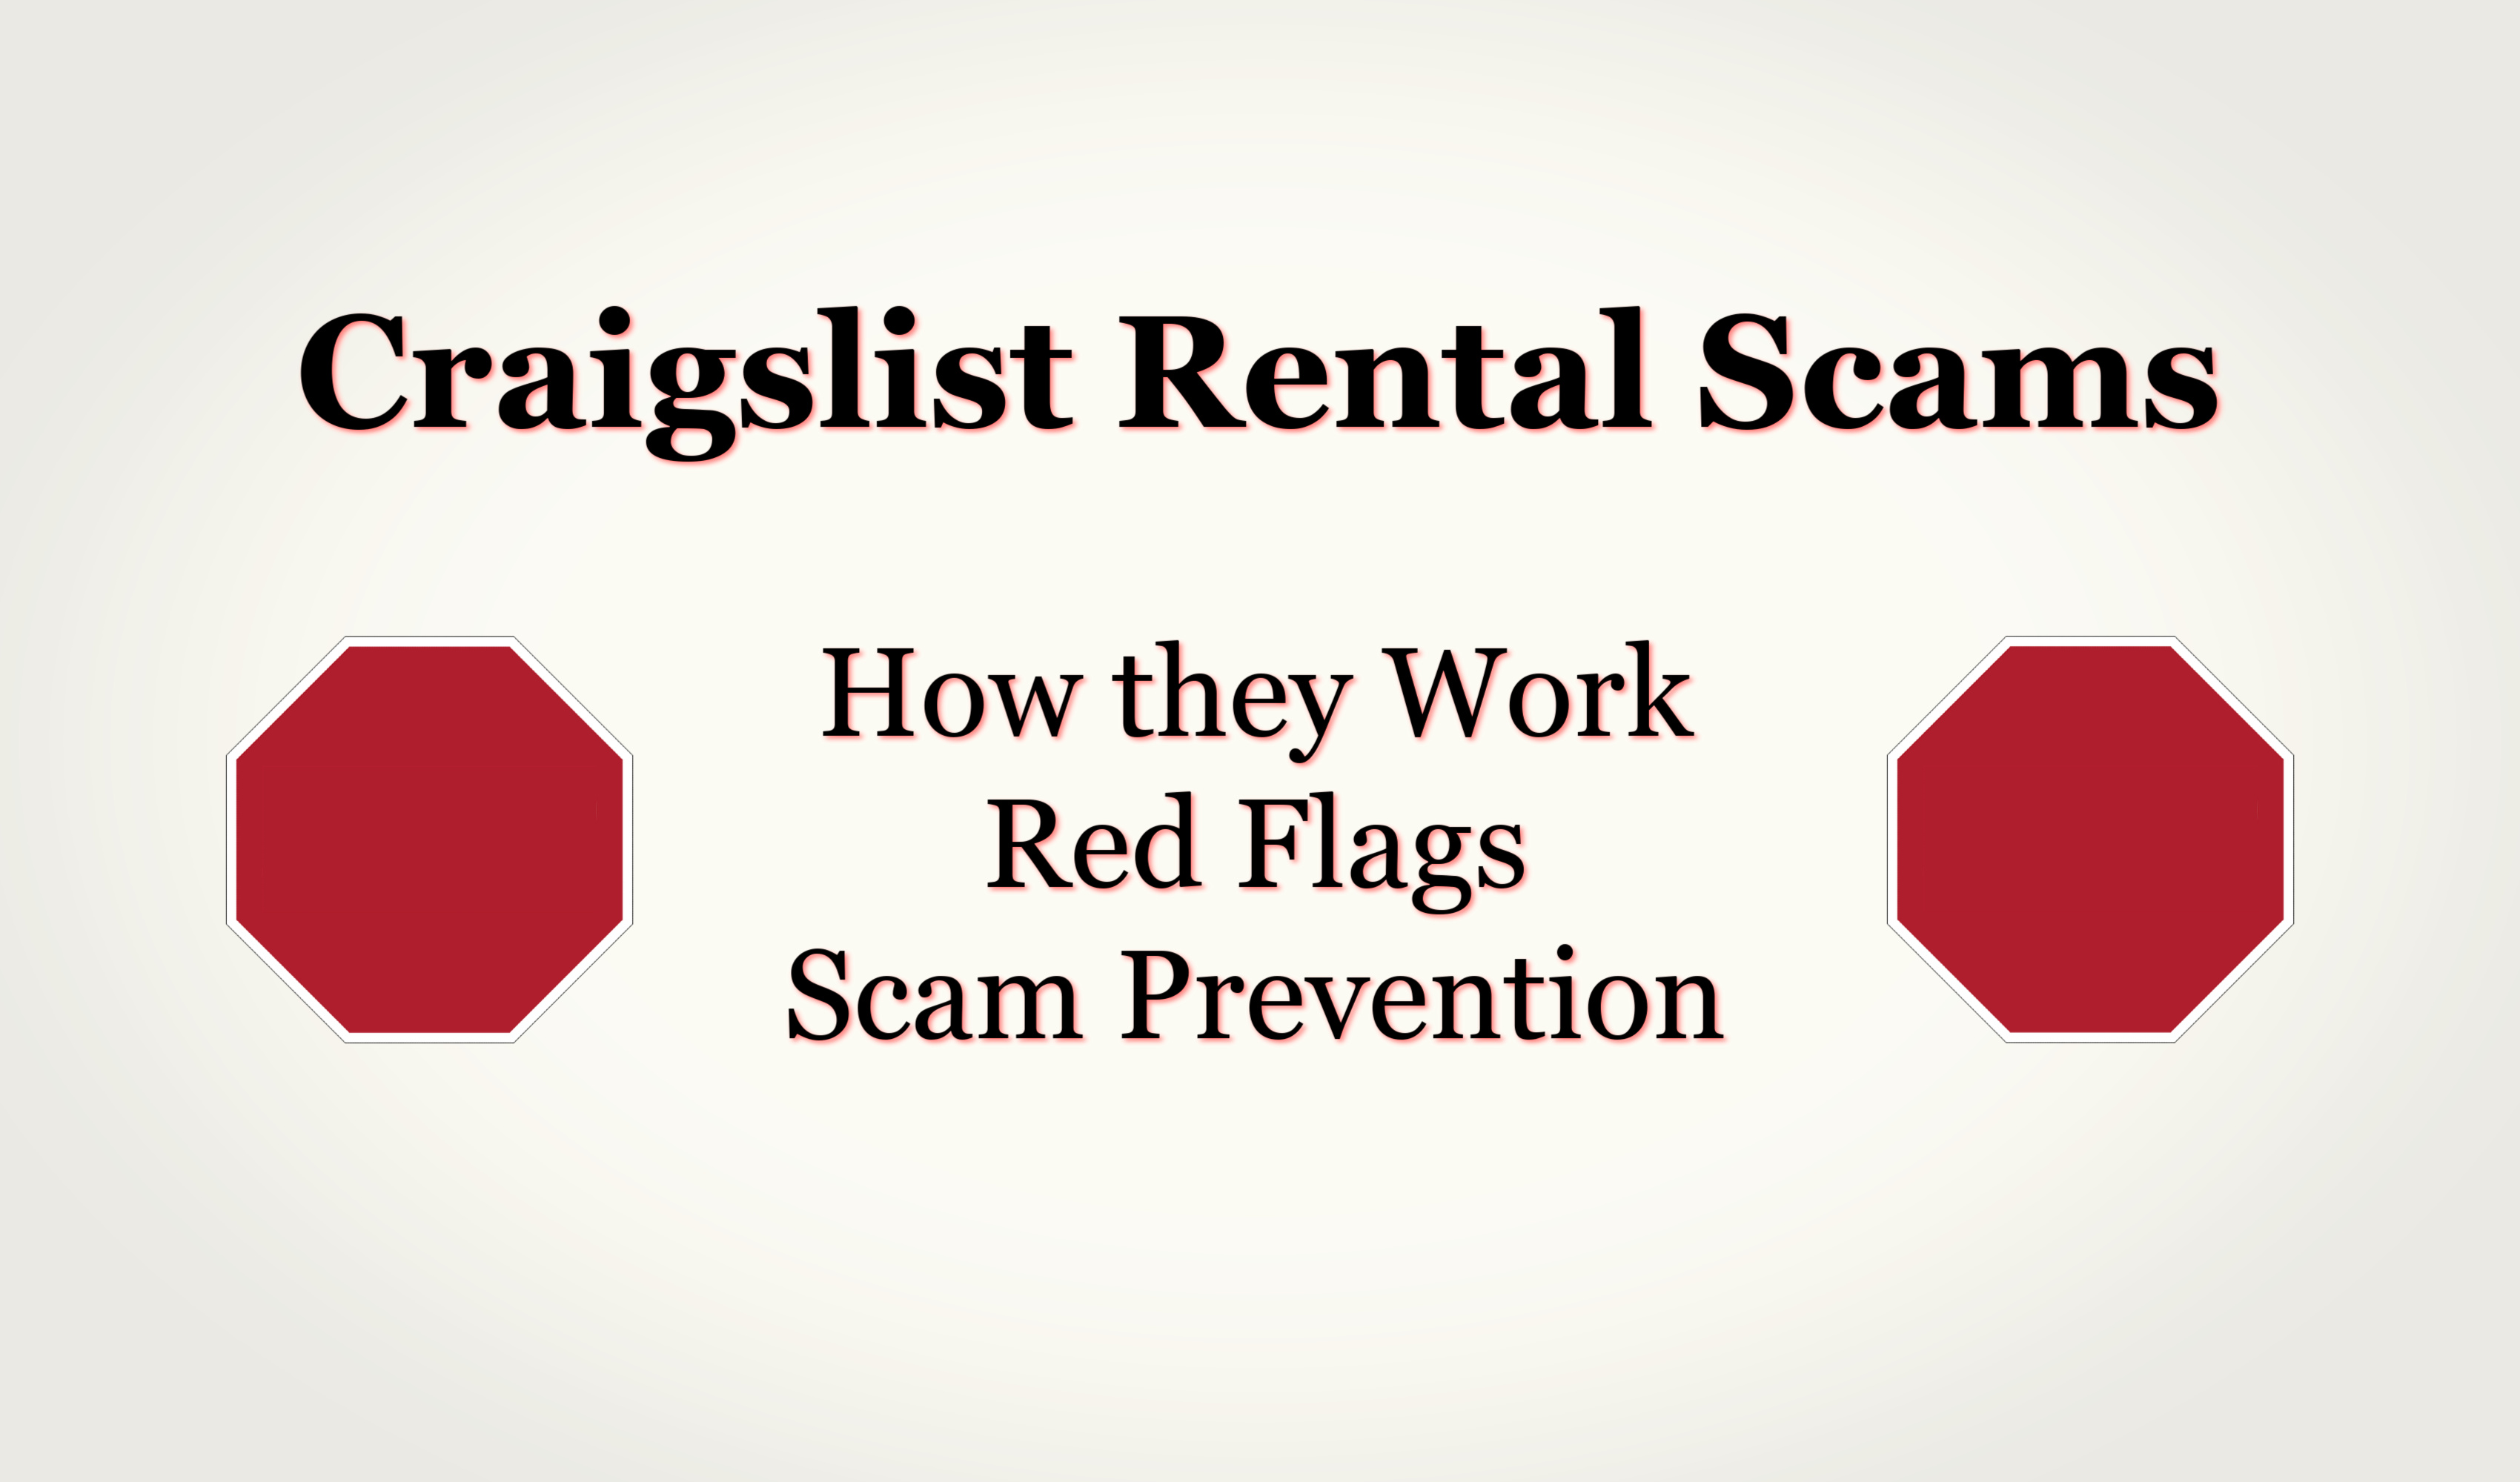 Craigslist Rental Scams